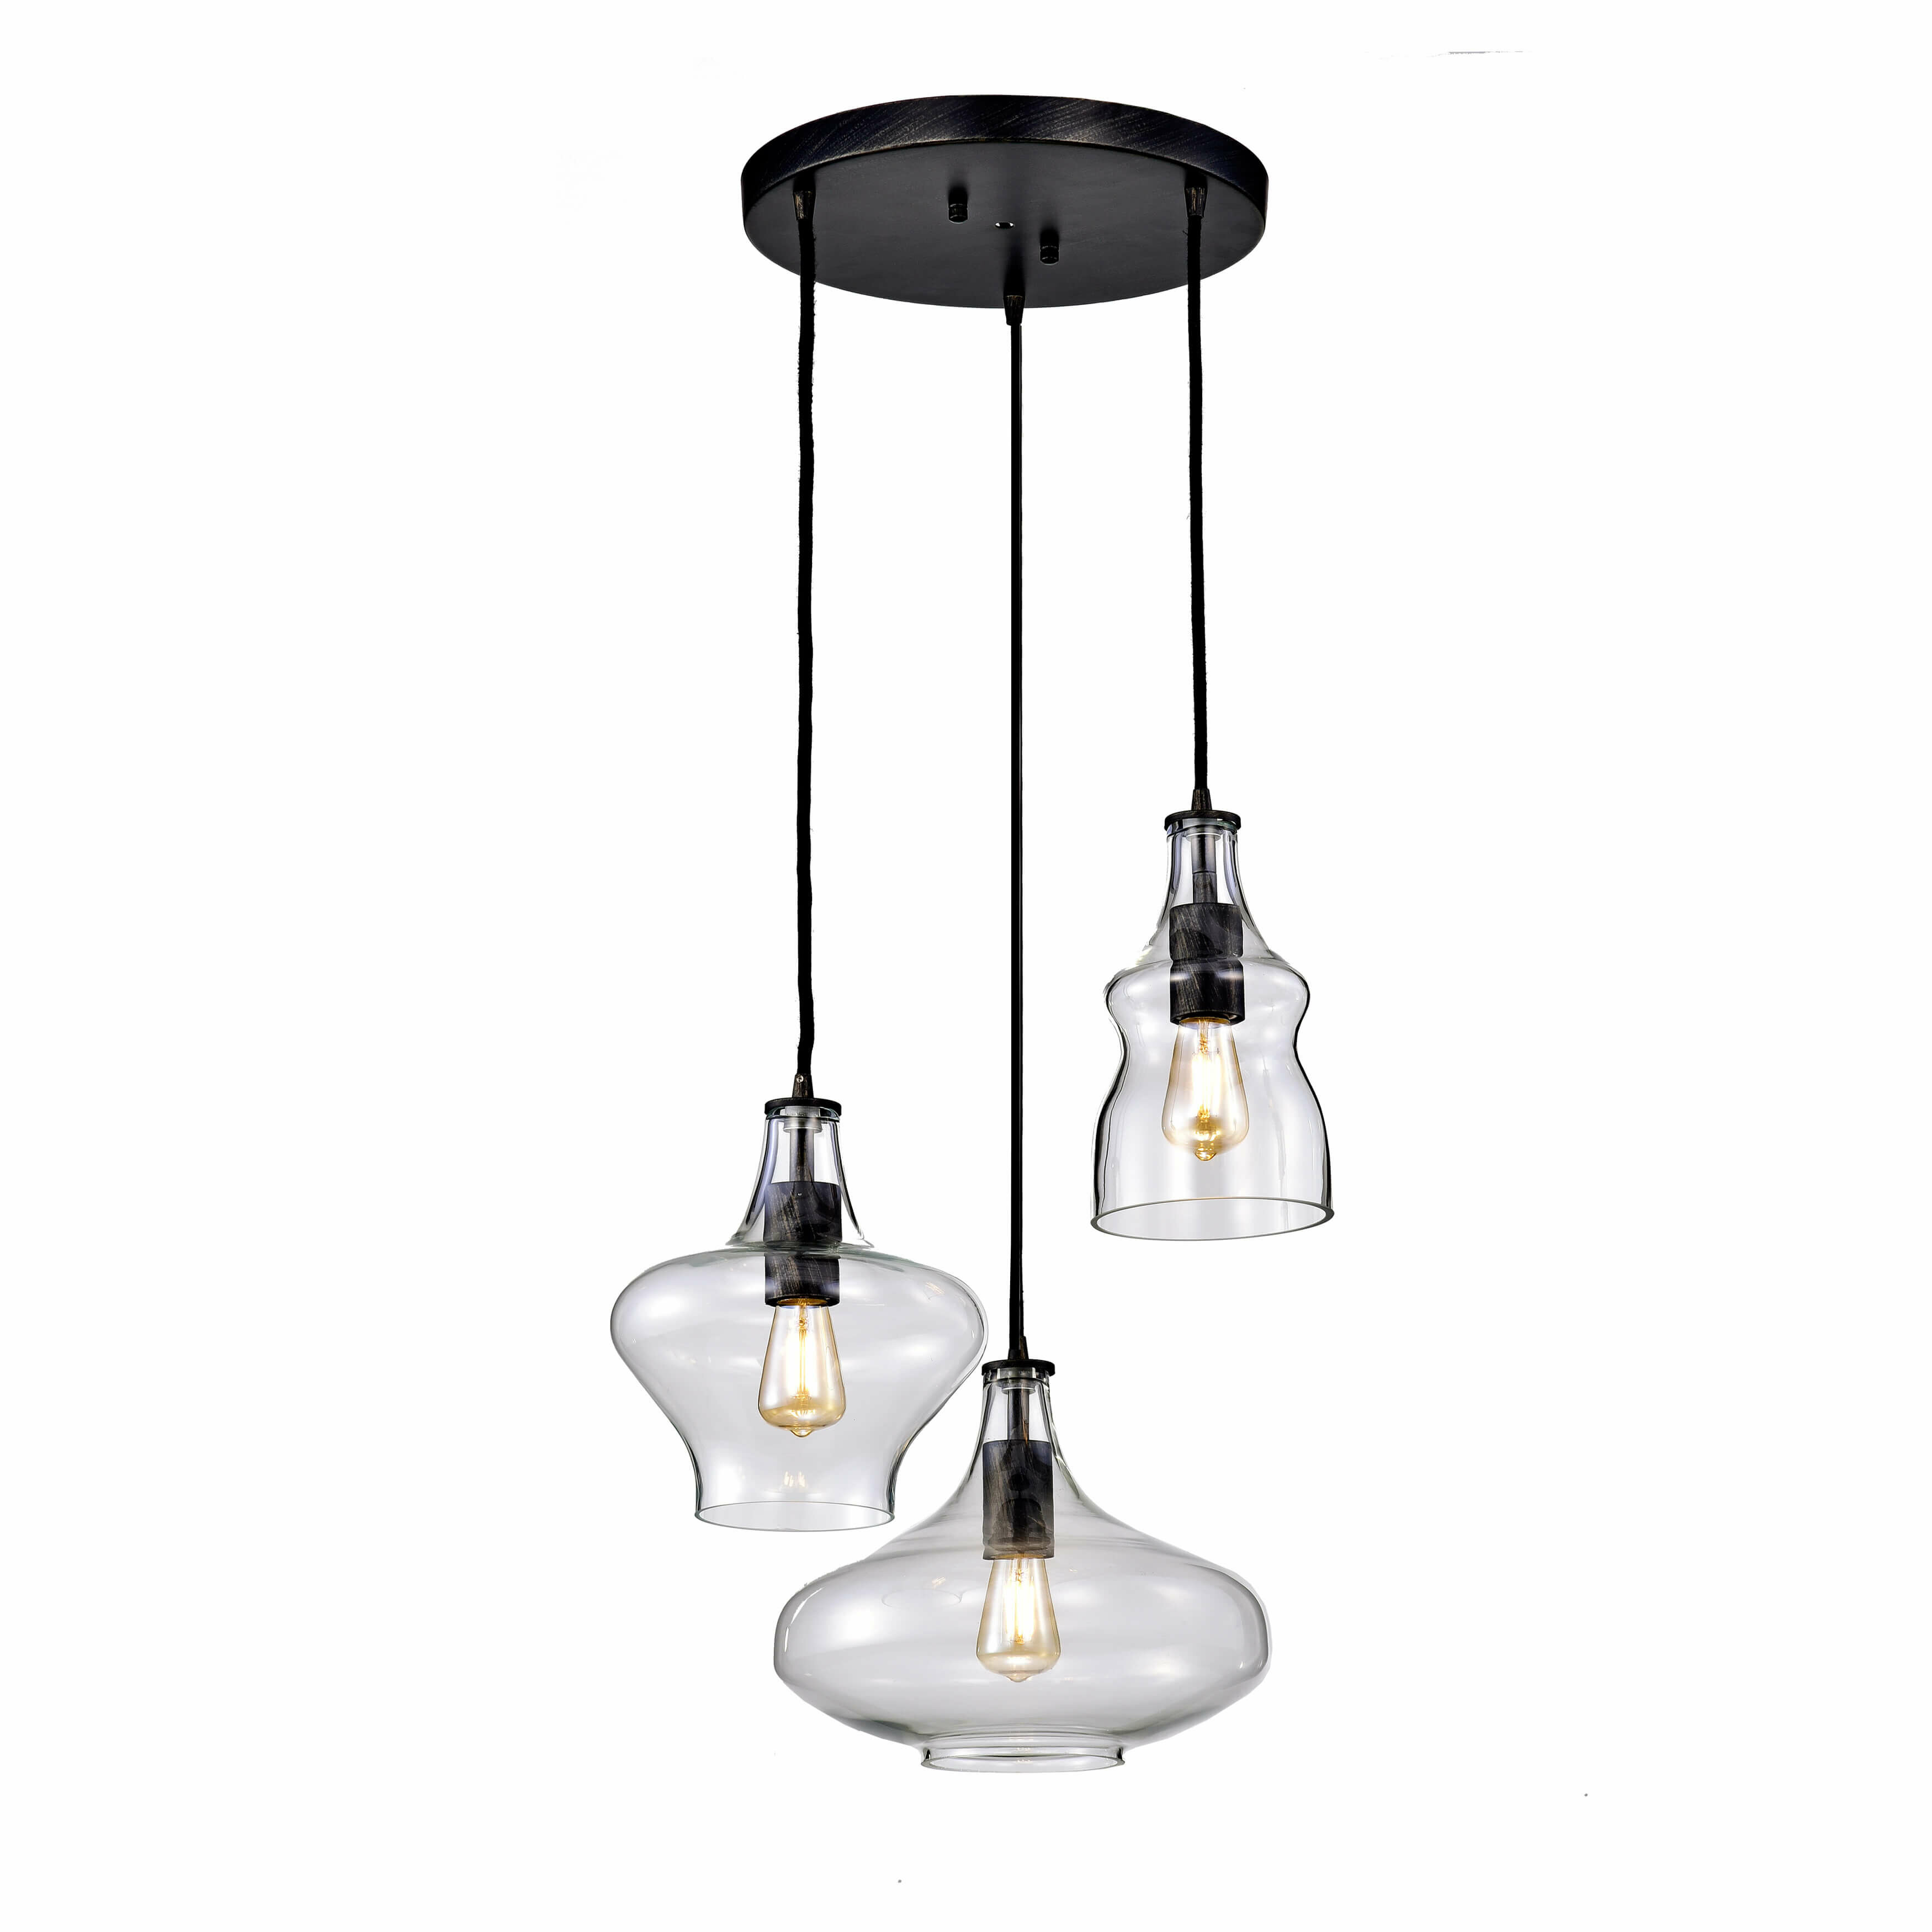 Gracie oaks rison 3 light cluster pendant wayfair